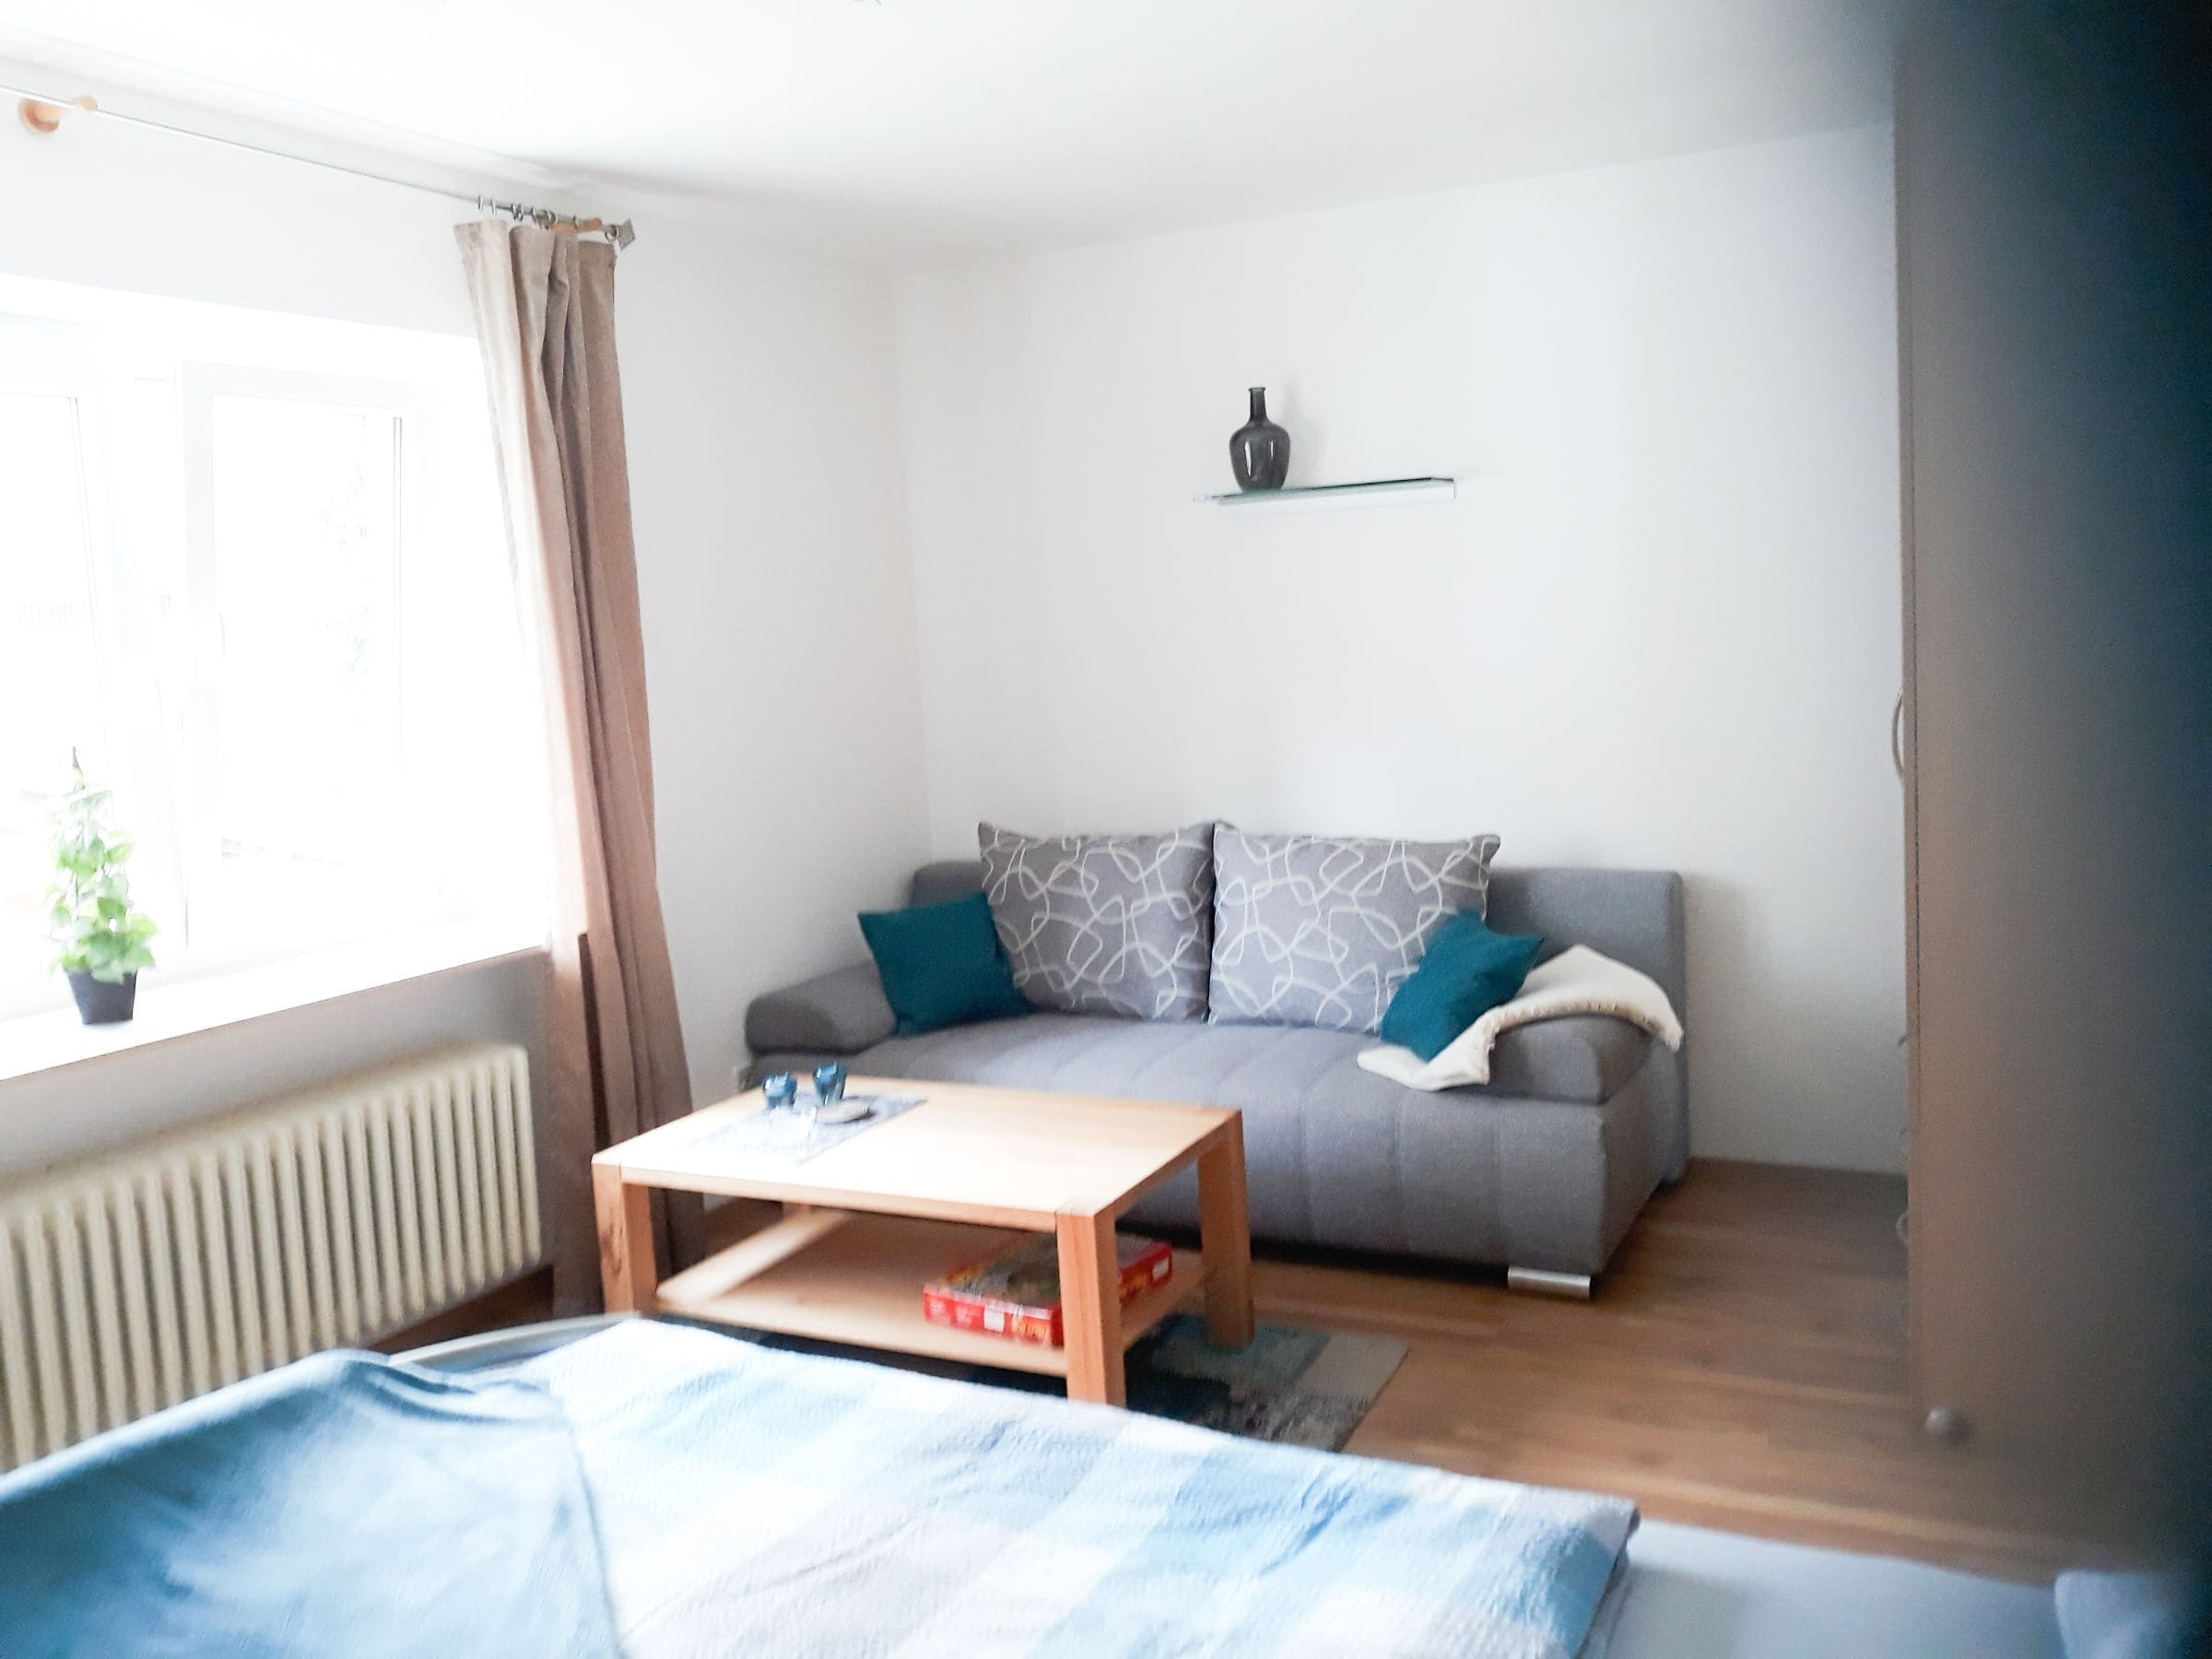 Apartment Mit Gartenblick 37qm 1 Wohn Schlafzimmer Max 3 Personen 2020 Room Prices Deals Reviews Expedia